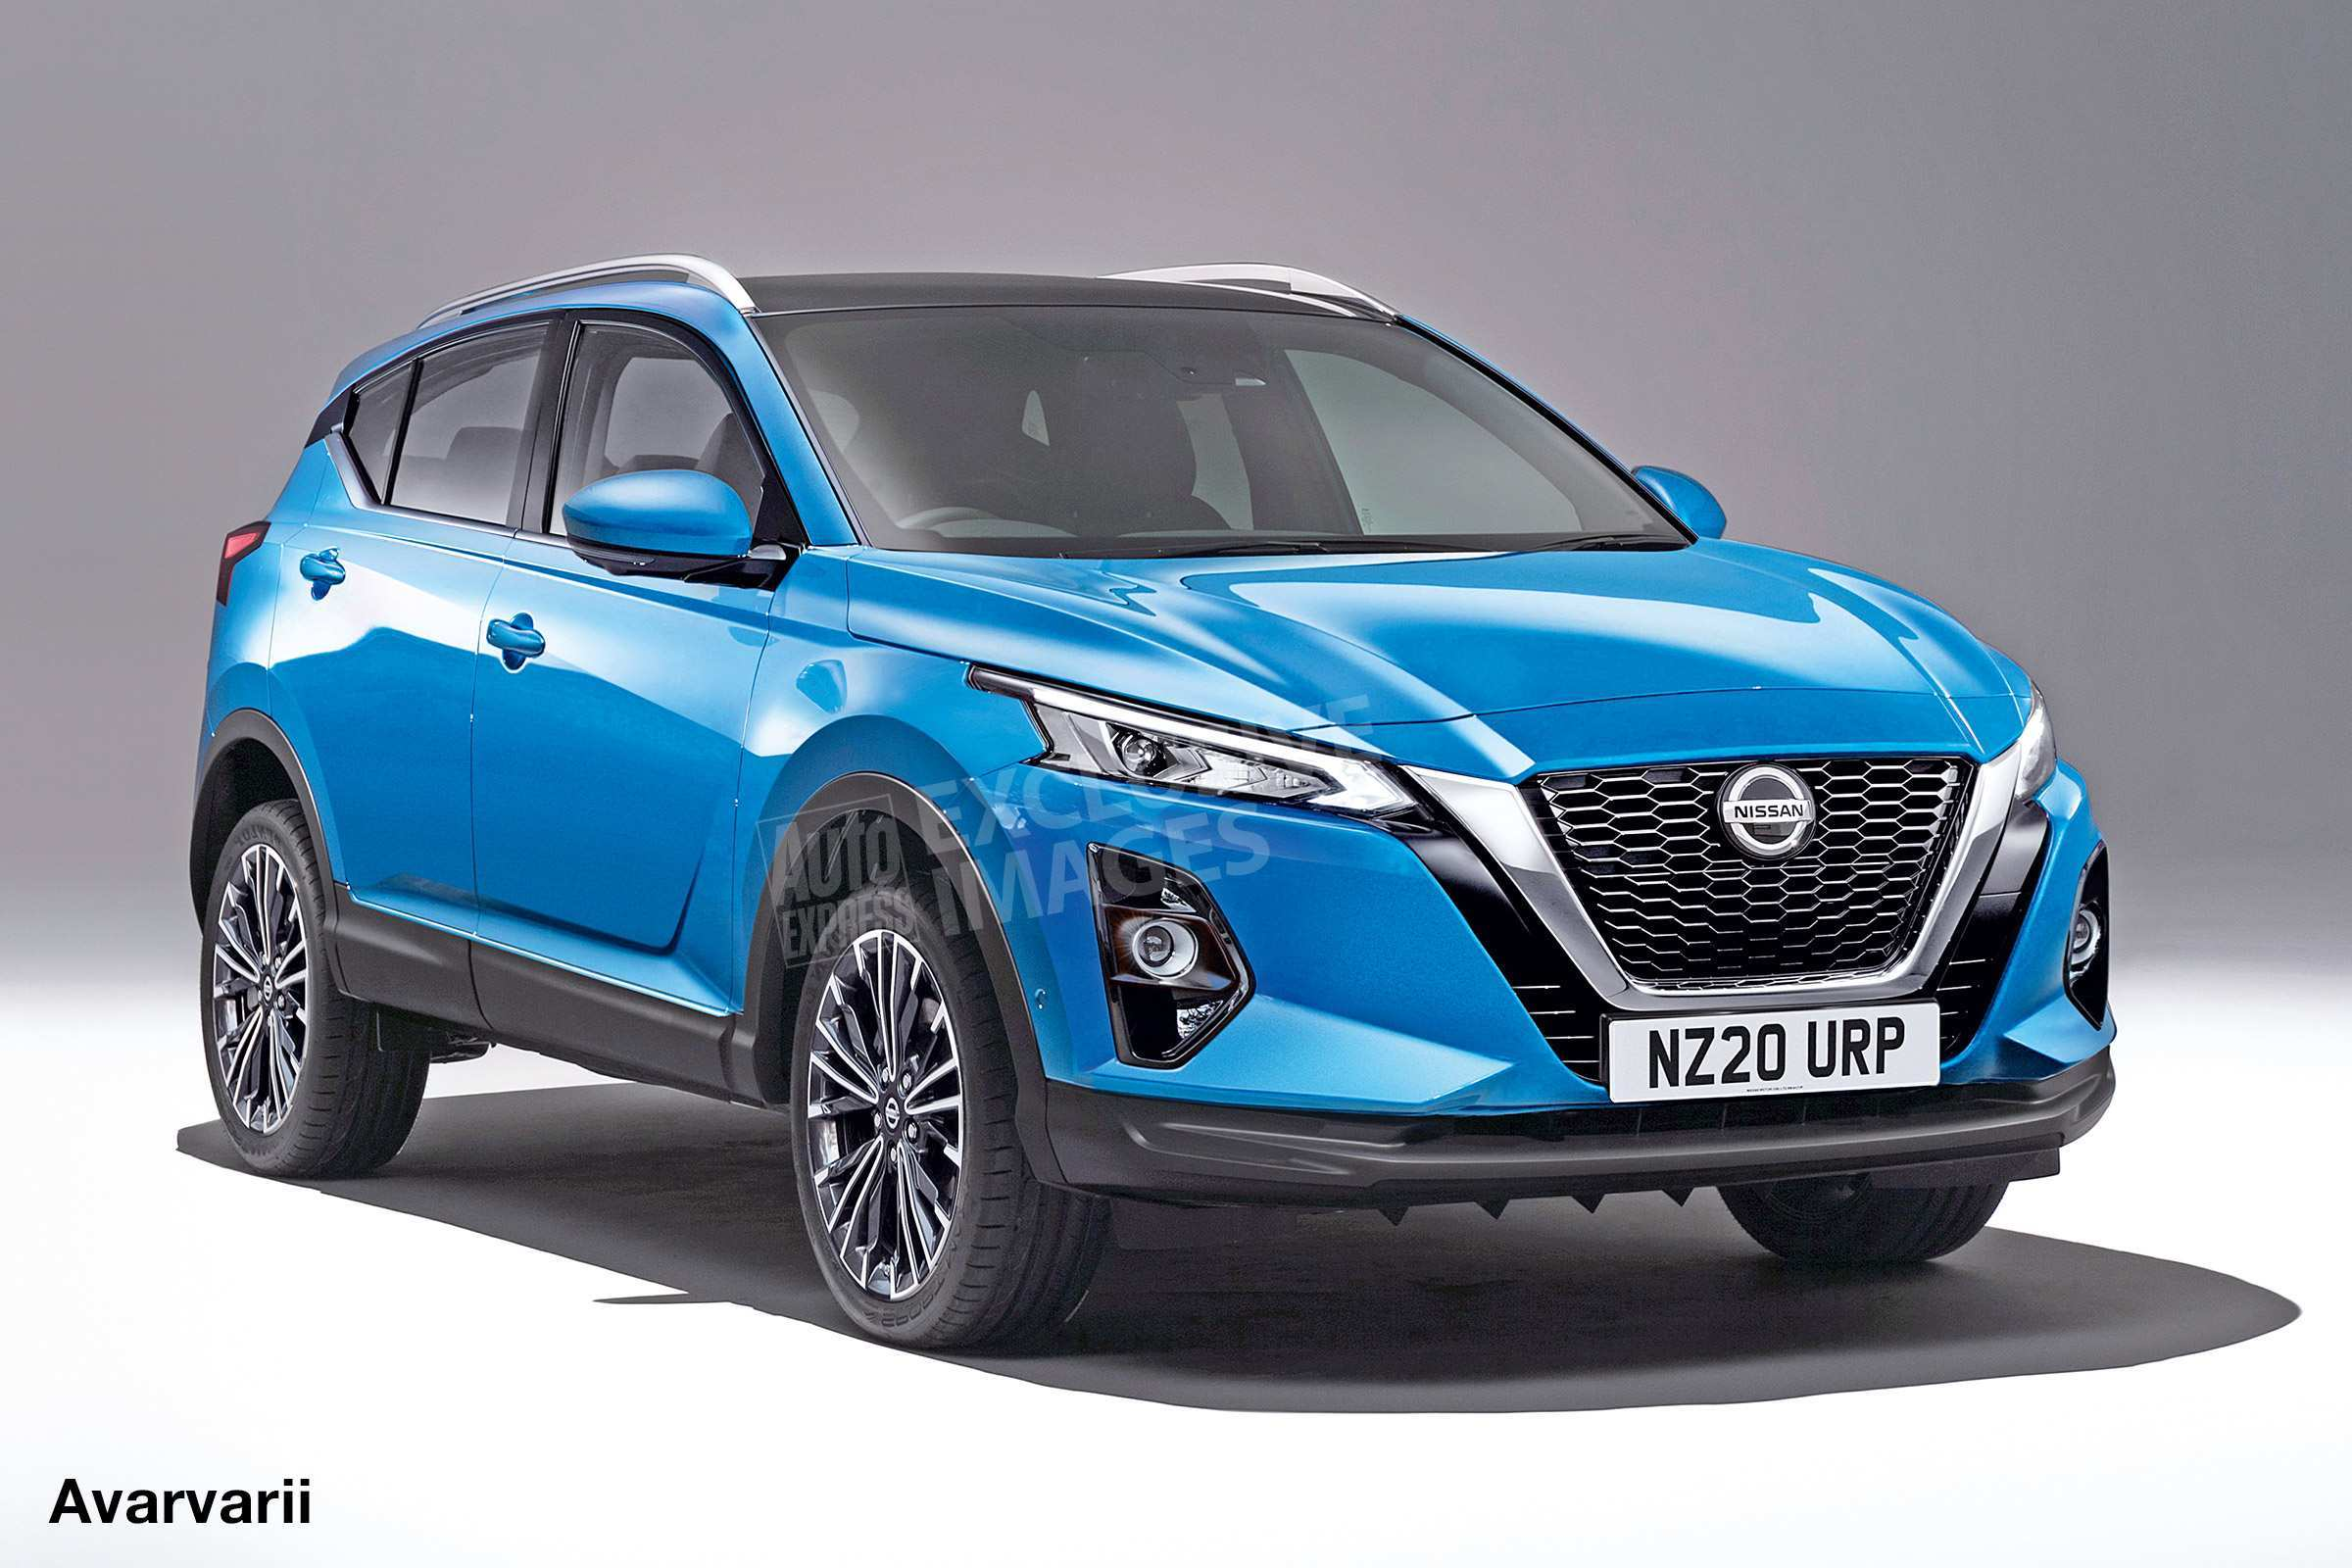 72 All New Nissan Qashqai 2020 Release Date Redesign and Concept for Nissan Qashqai 2020 Release Date